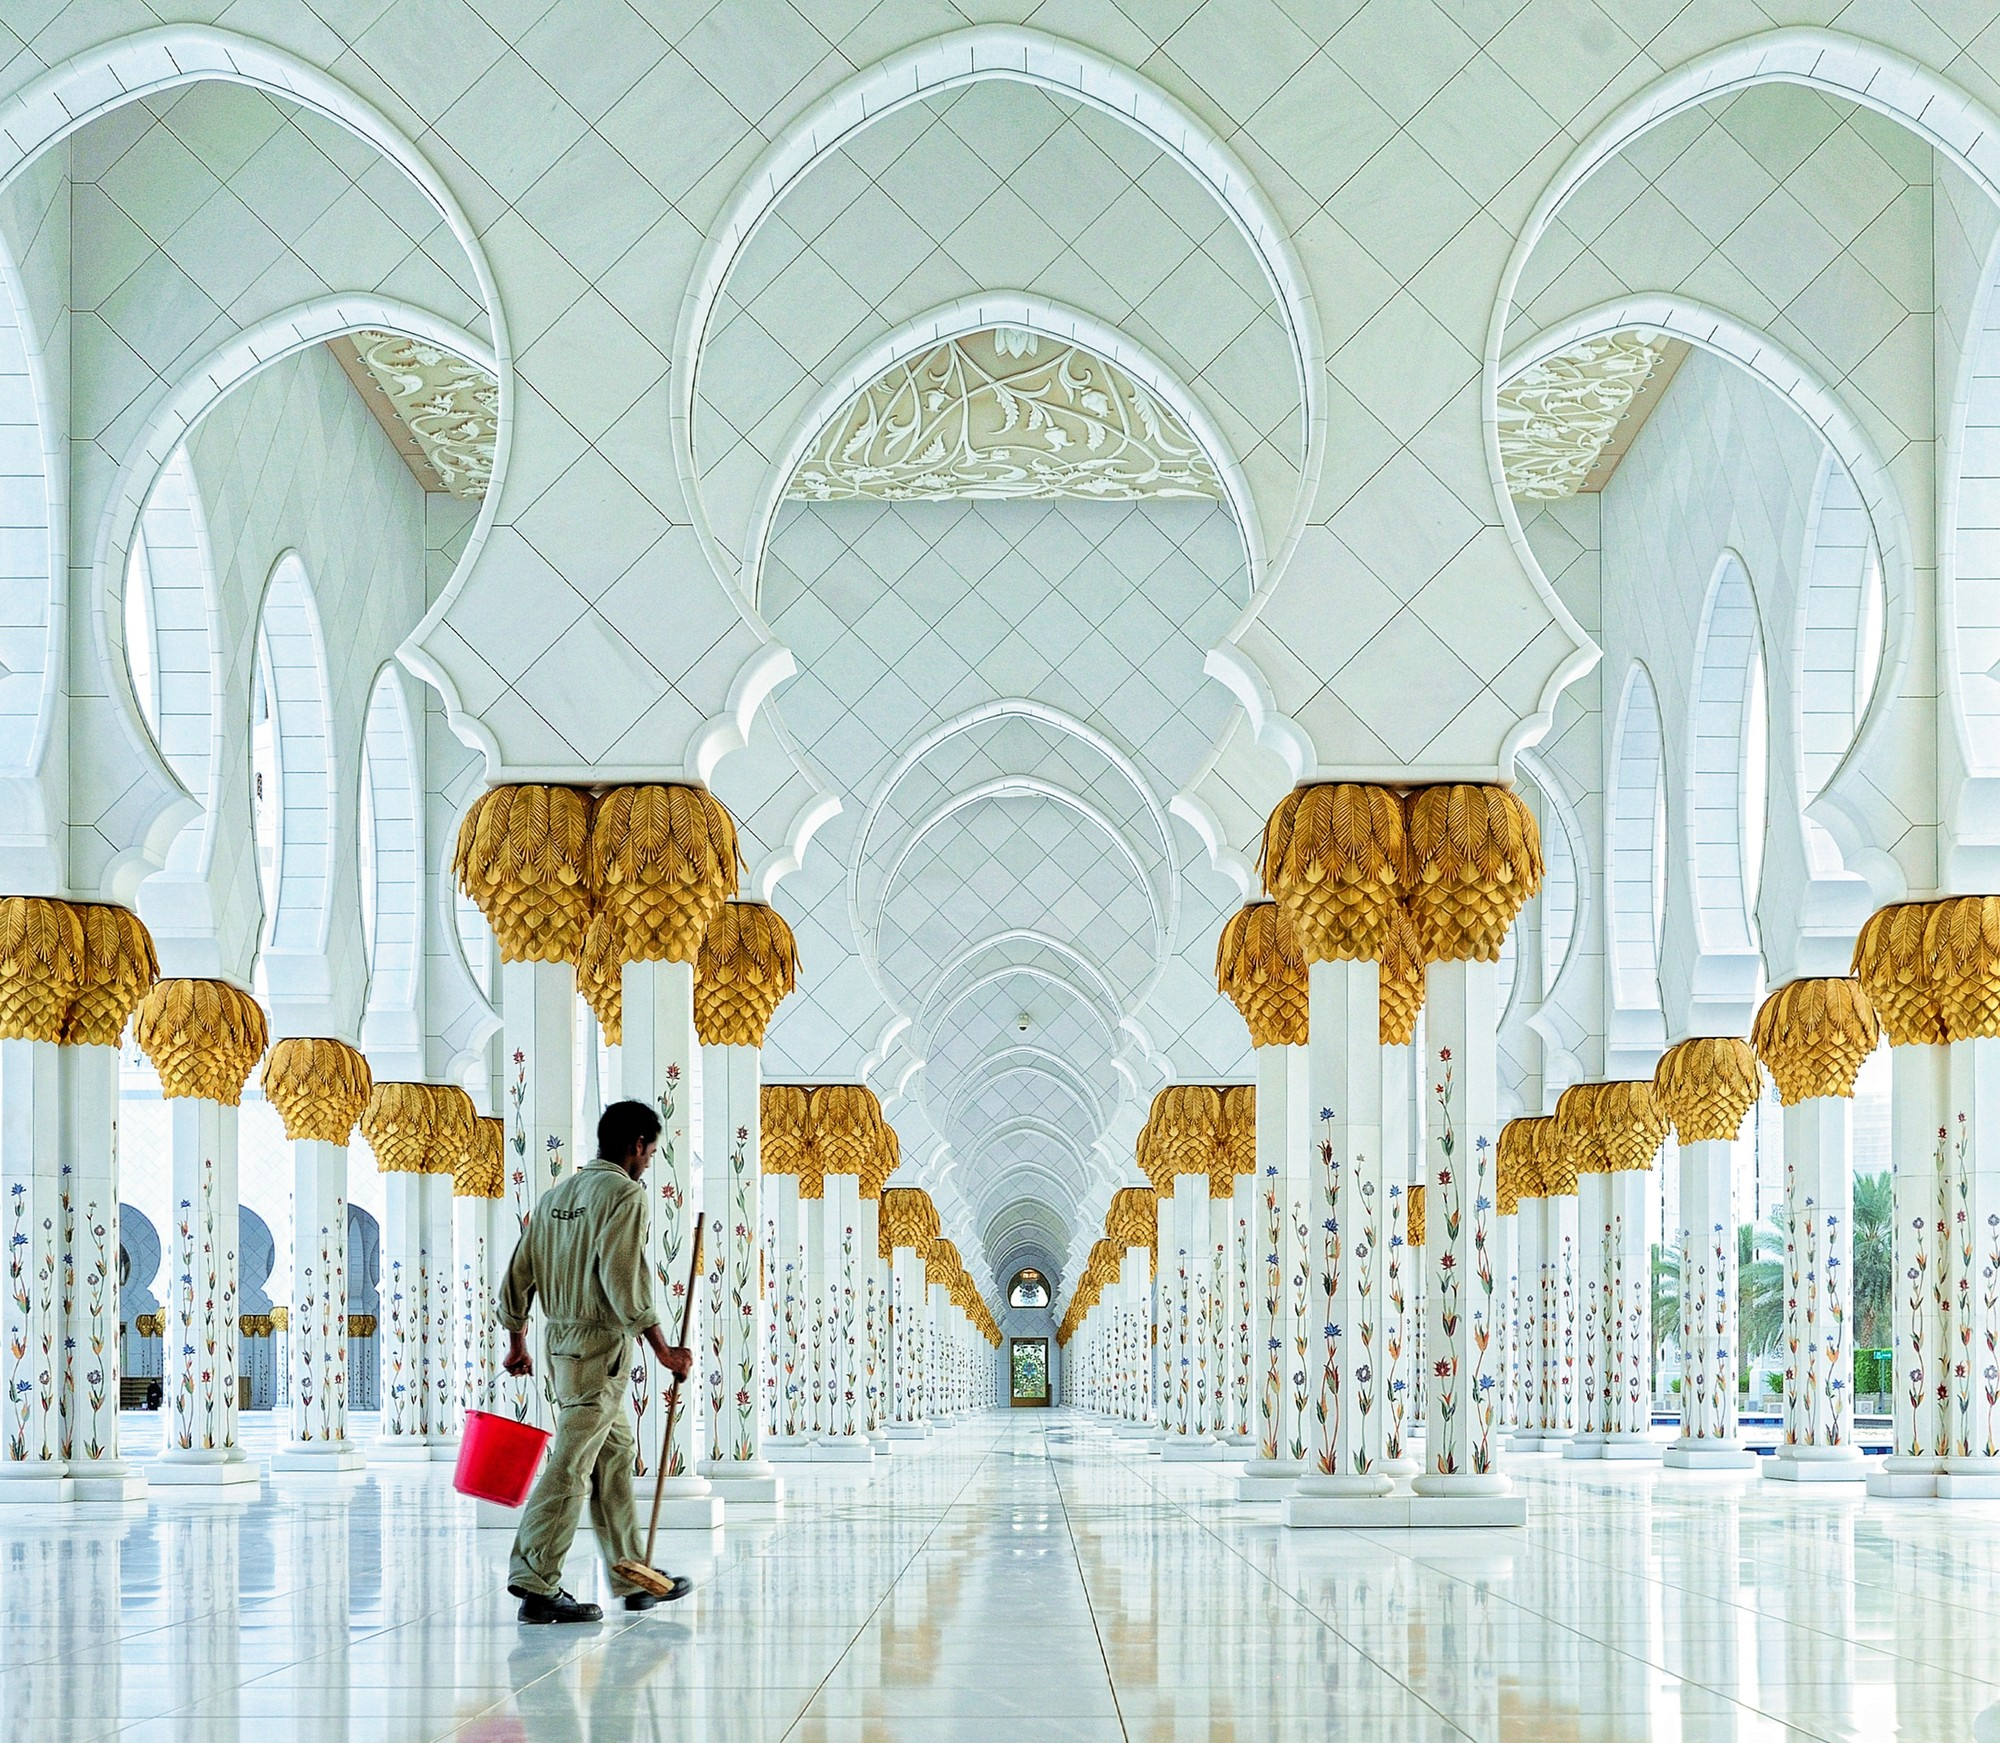 Sheikh Zayed Grand Mosque. Image © Hoang Long Ly